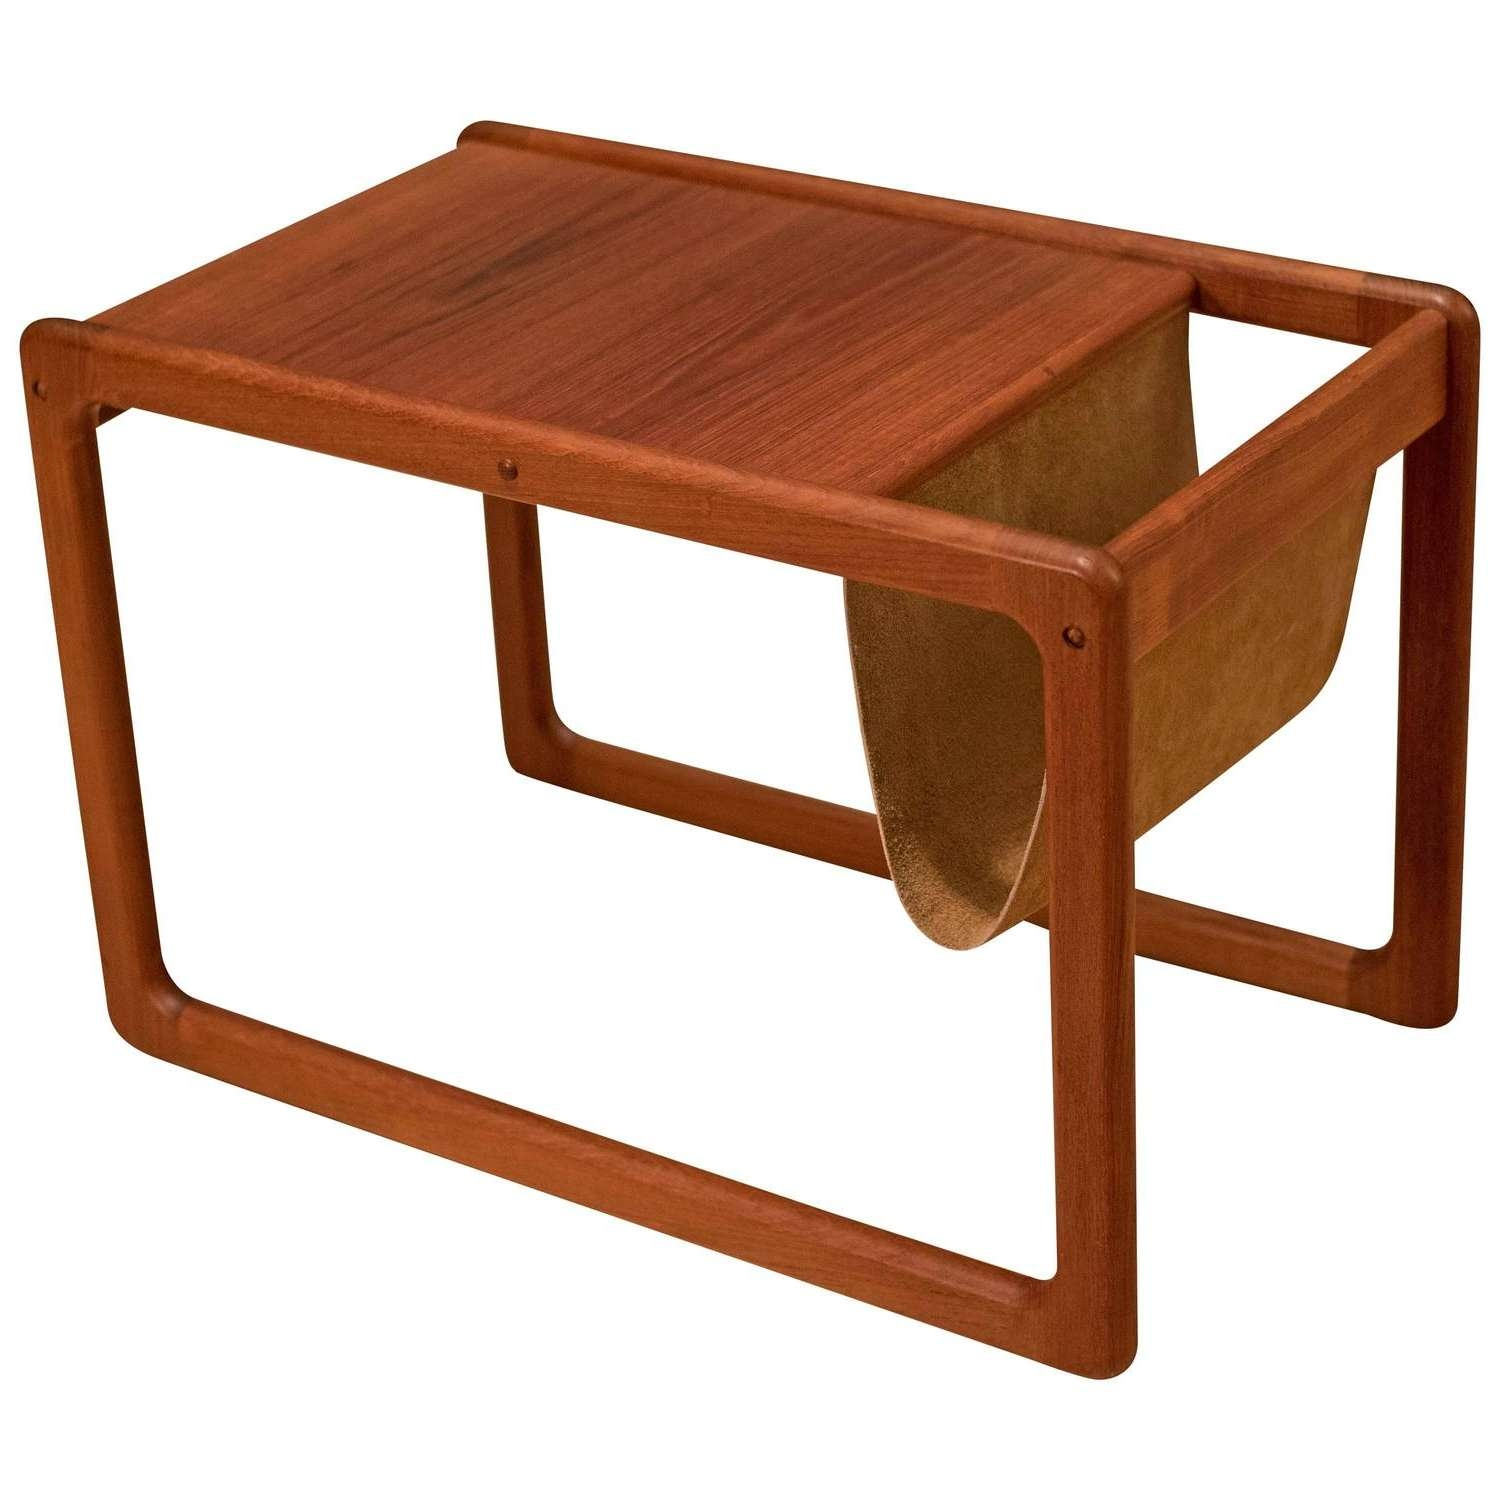 Vintage Danish Leather Magazine Rack Side Table At 1Stdibs With Regard To Current Coffee Tables With Magazine Rack (View 16 of 20)